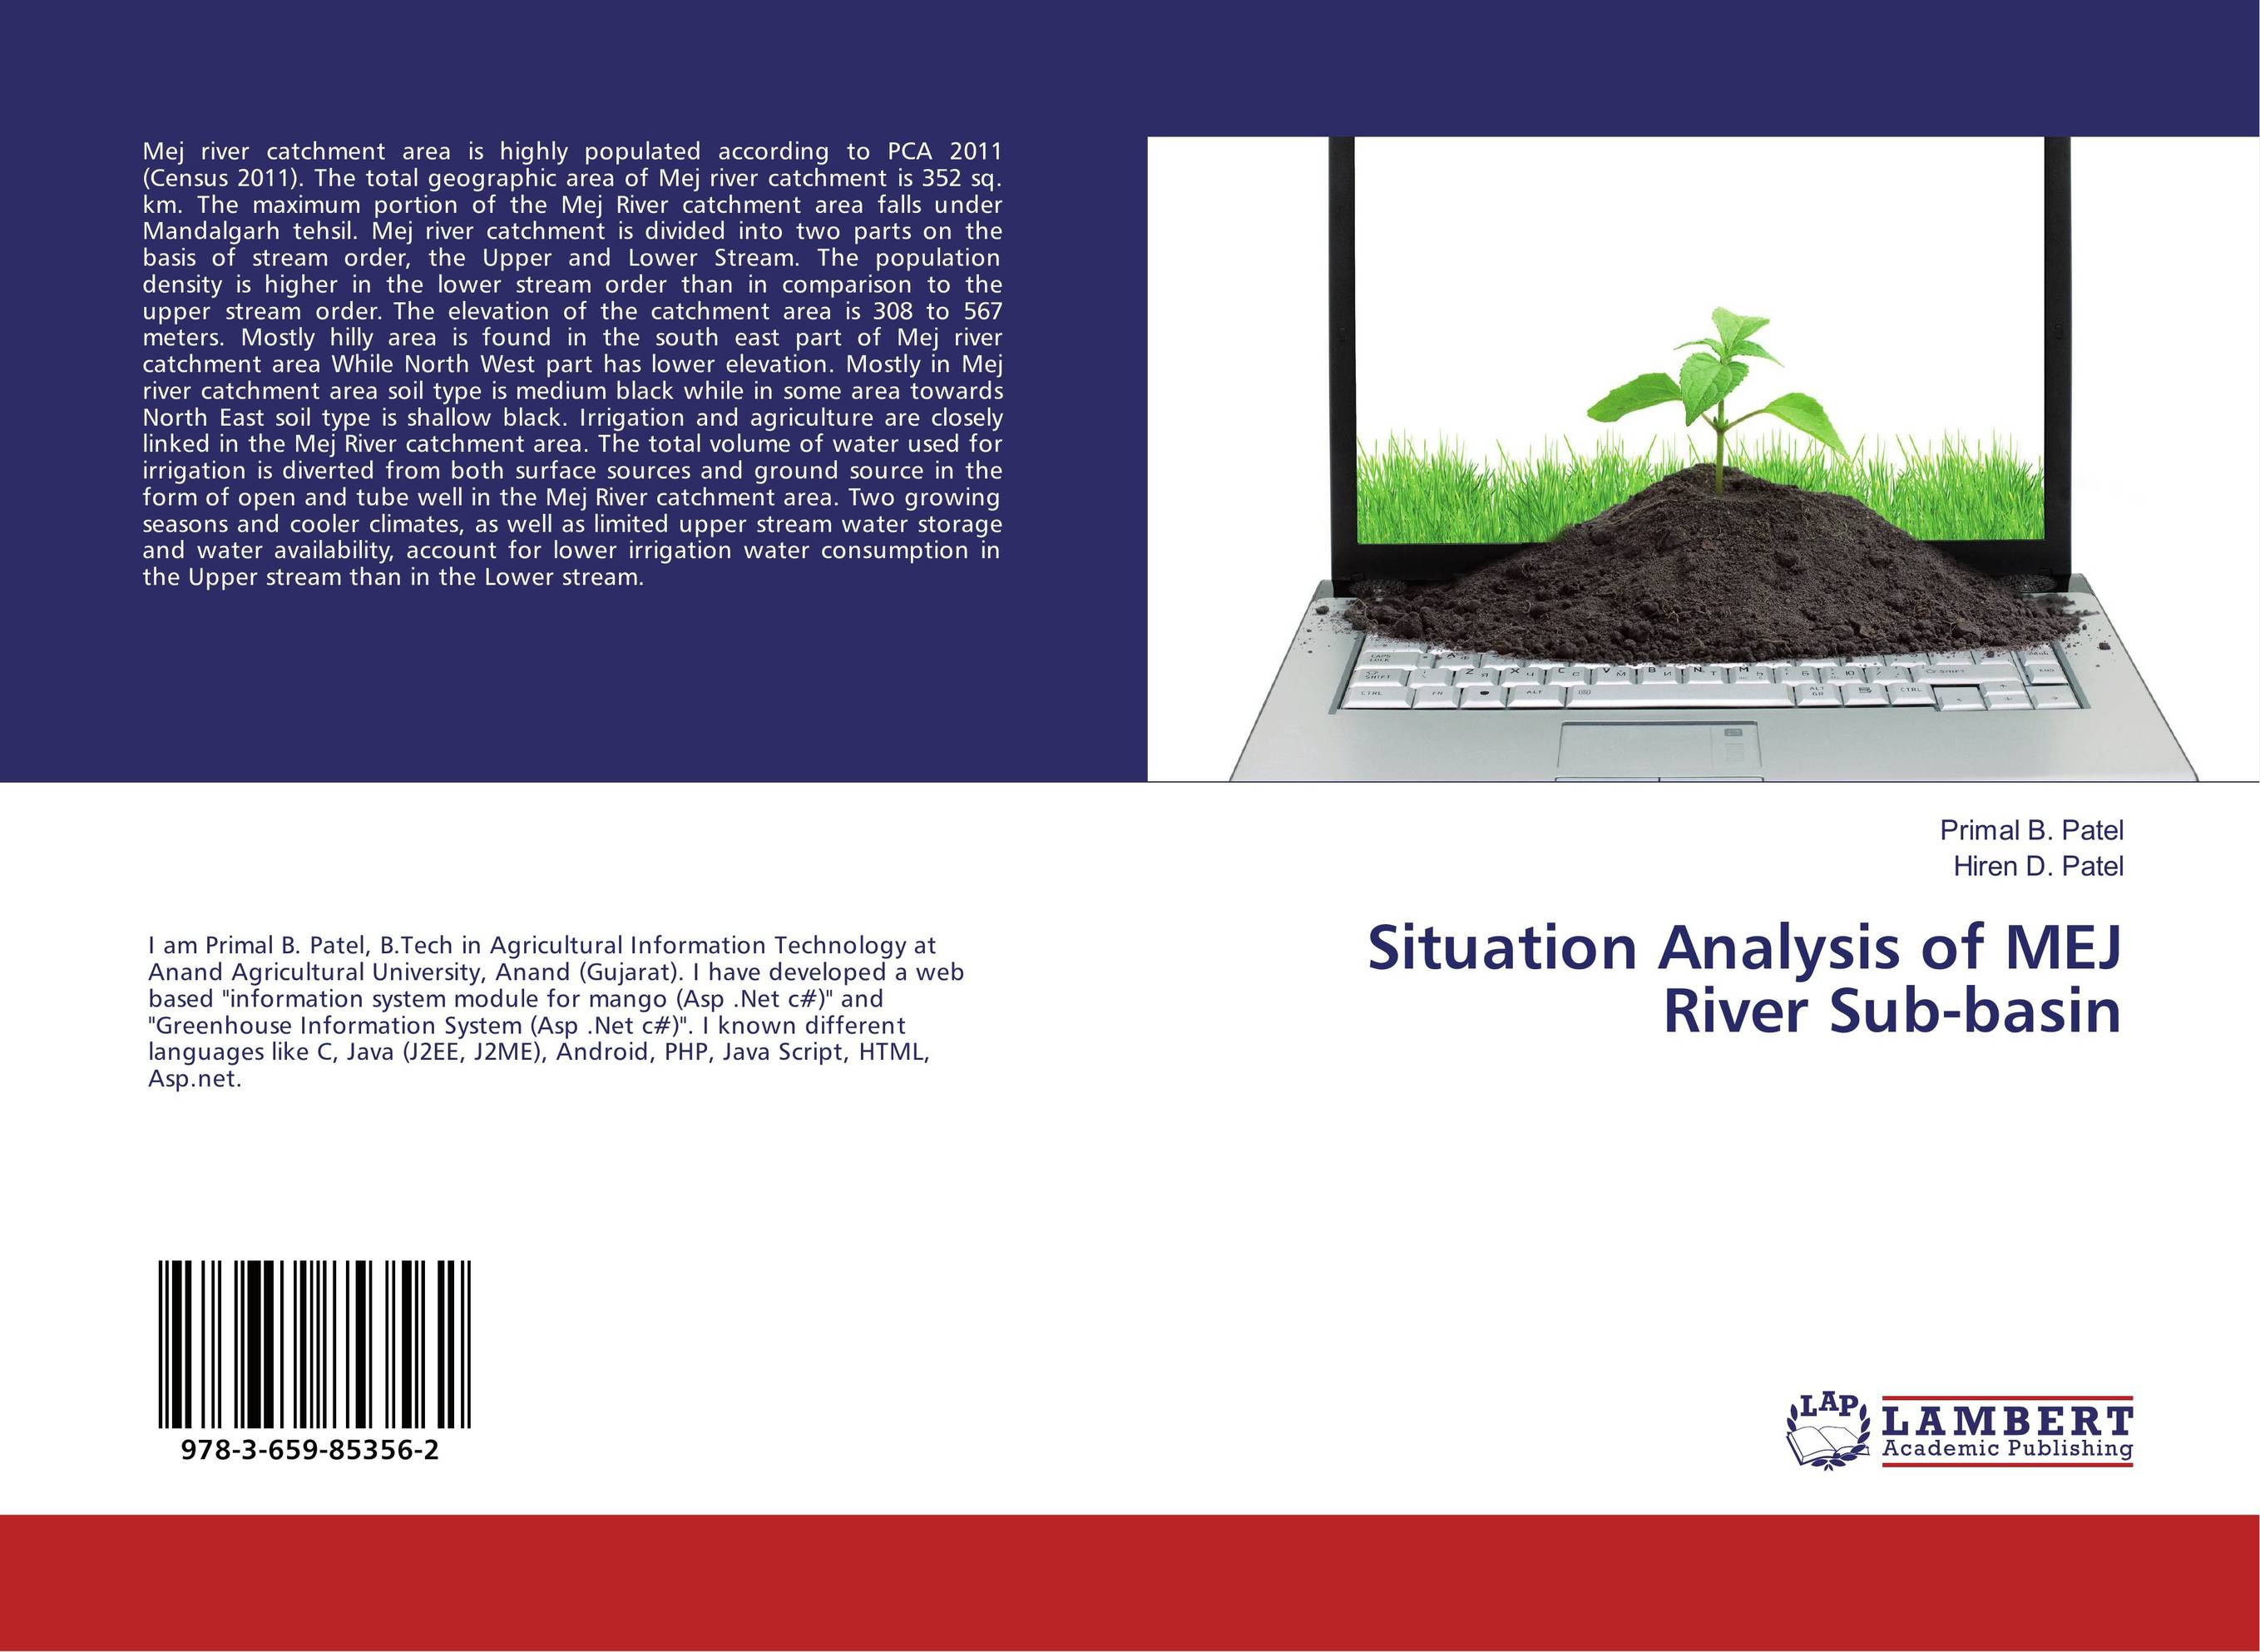 Situation Analysis of MEJ River Sub-basin плед сruise welcom